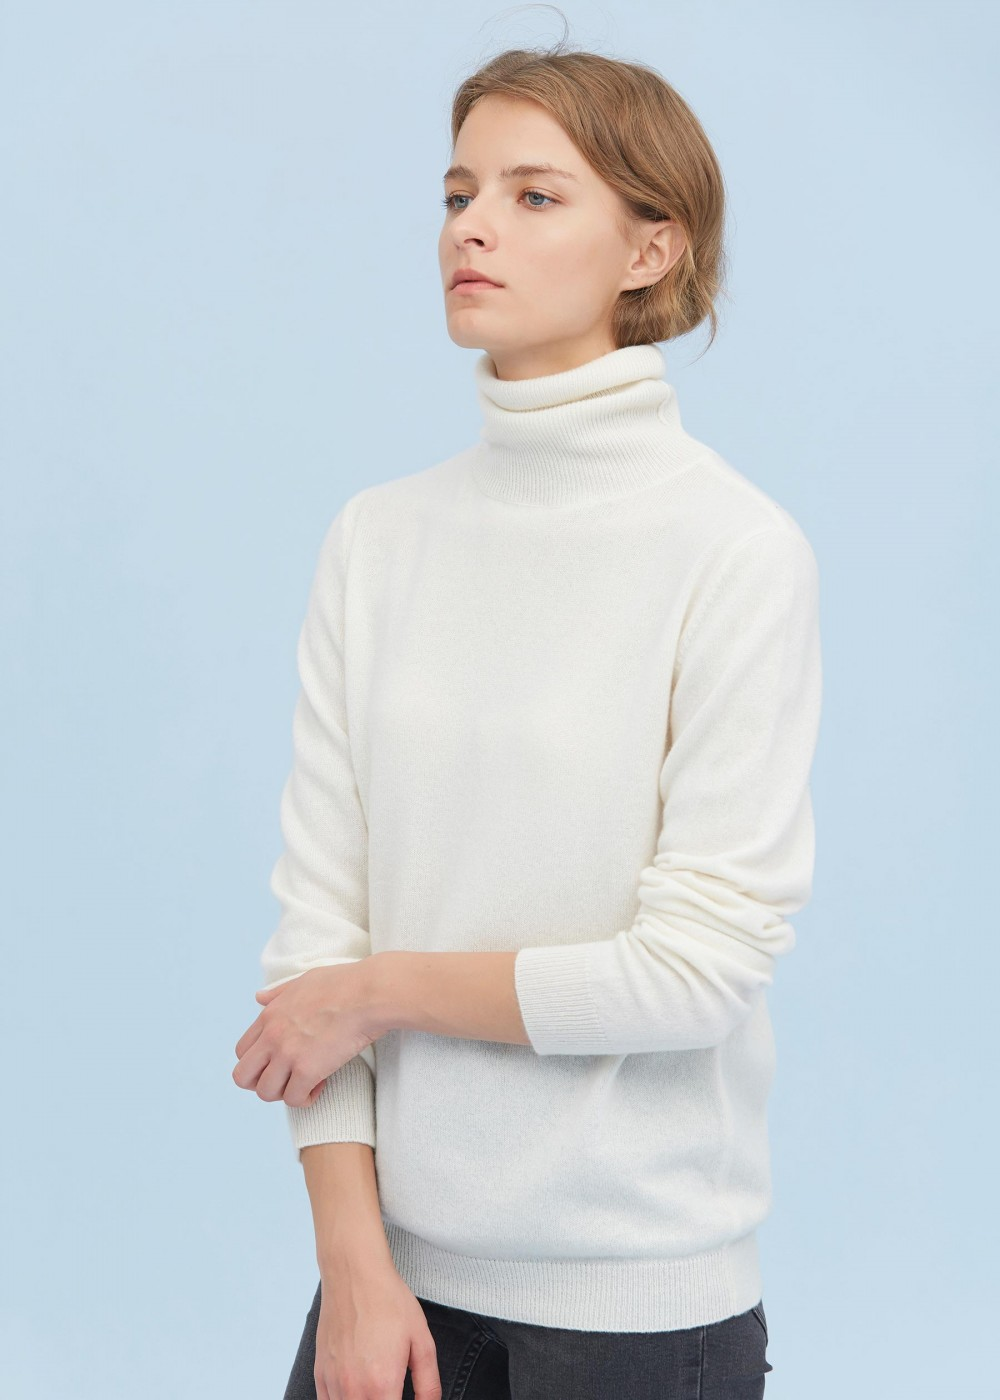 Pure Cashmere Turtleneck Sweater in 2020 | Ladies turtleneck